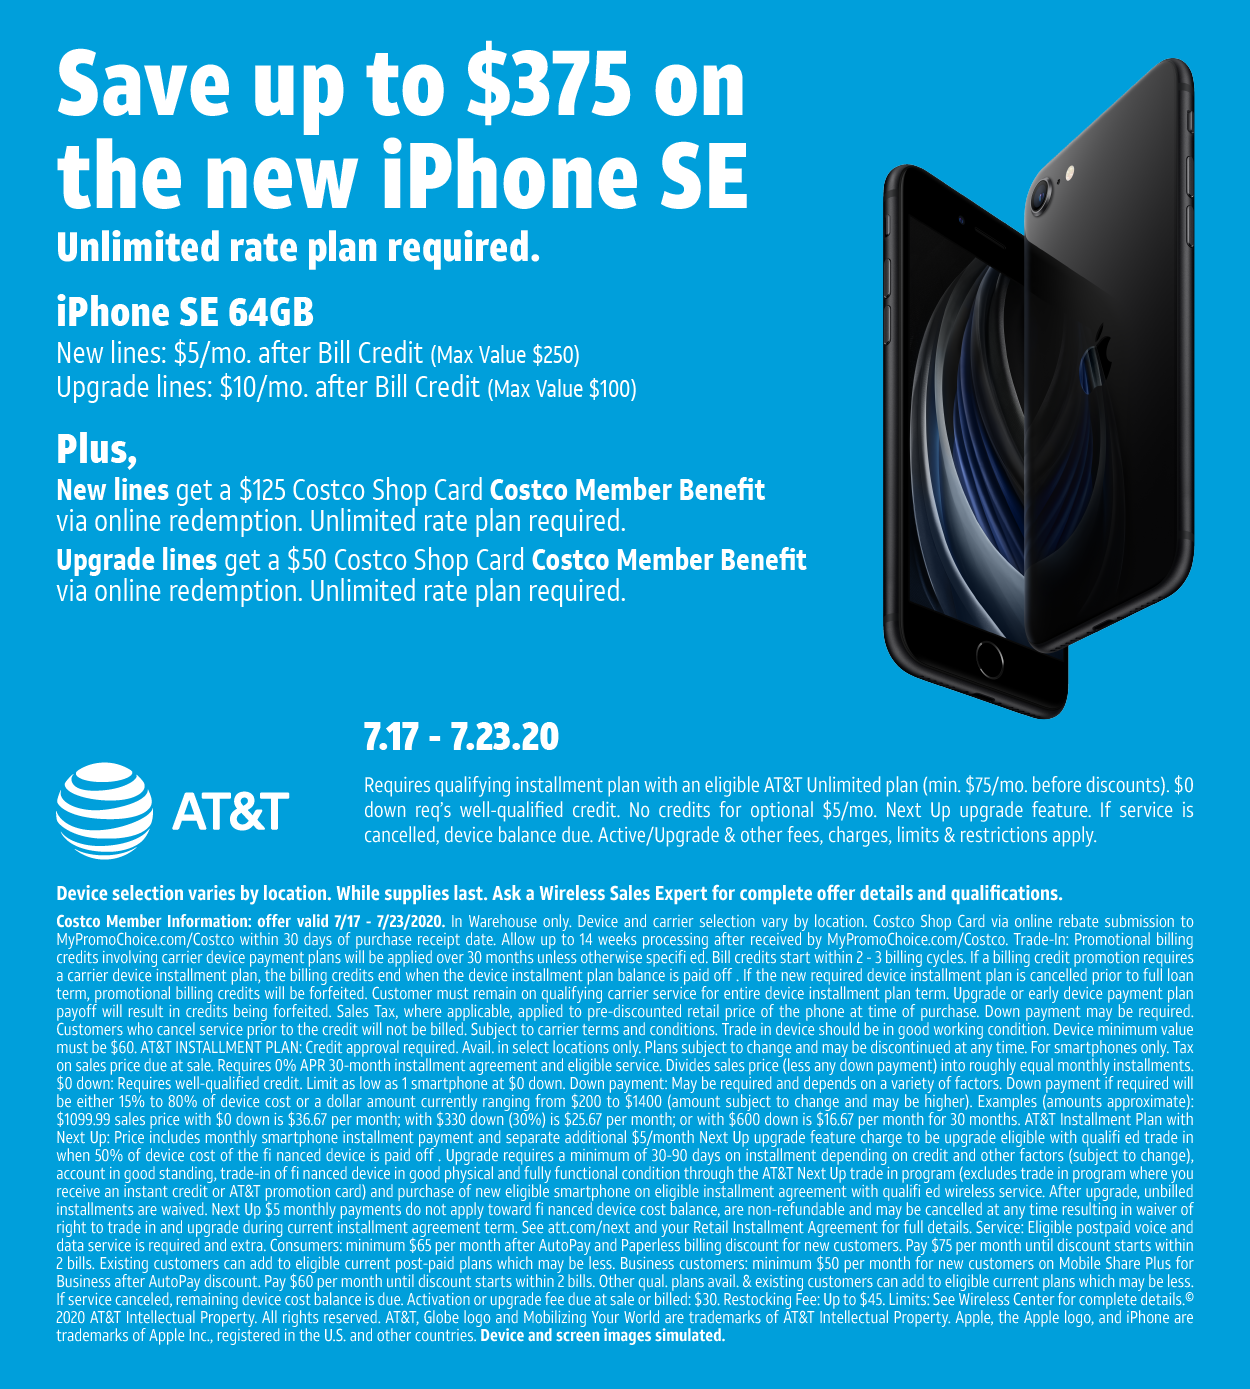 AT&T iPhone